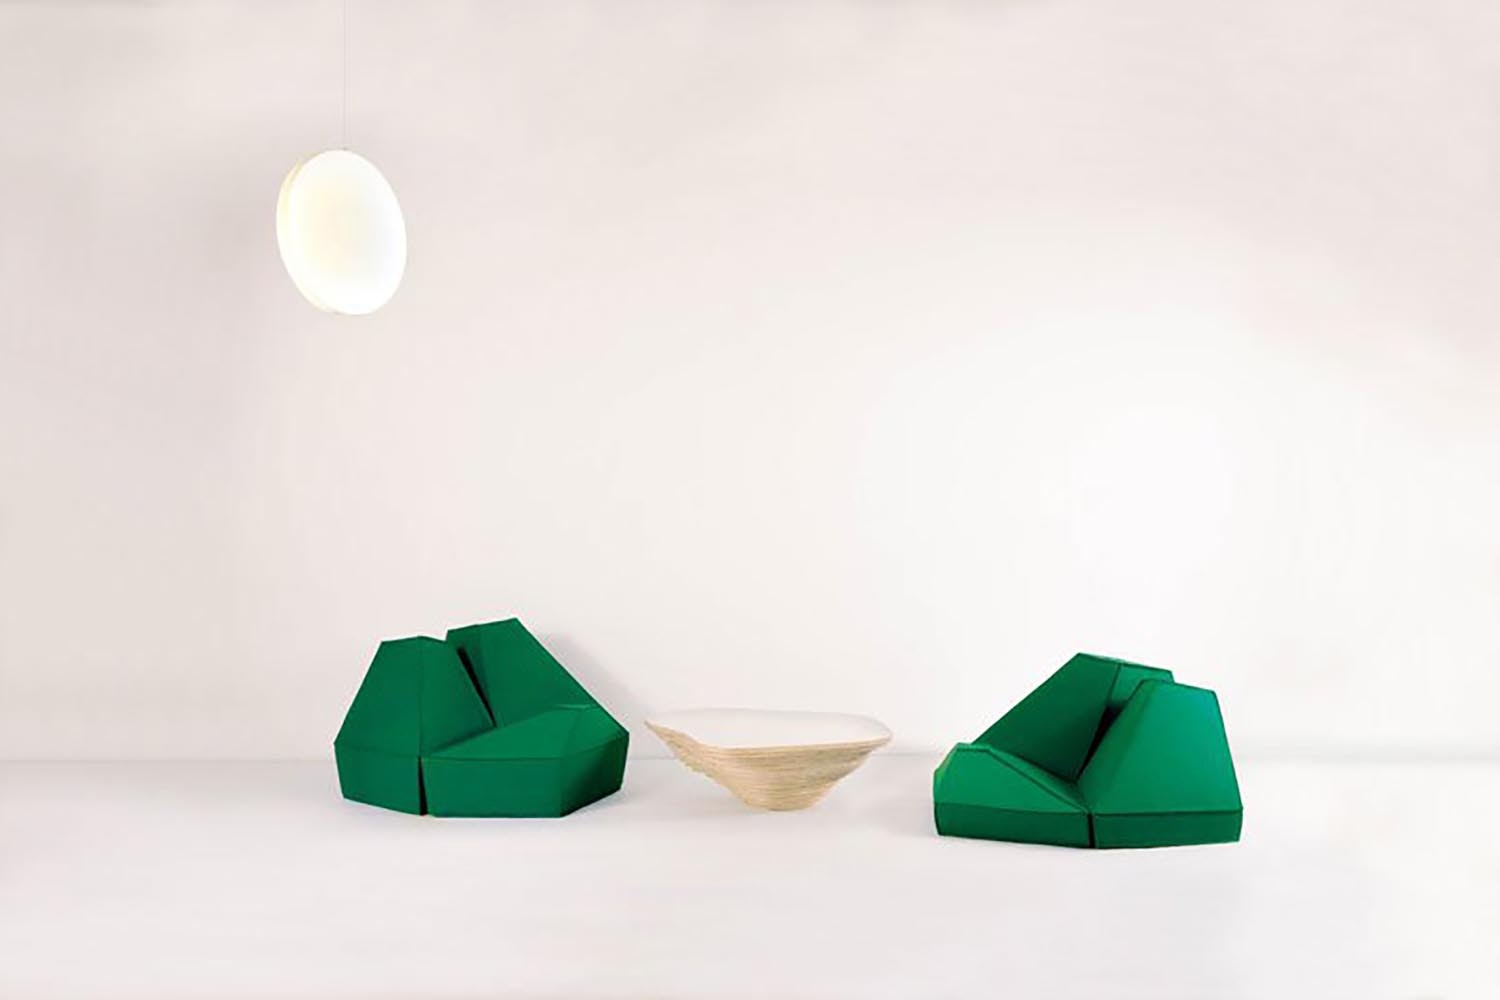 Les Angles Floor Cushion by Stephanie Marin for Smarin